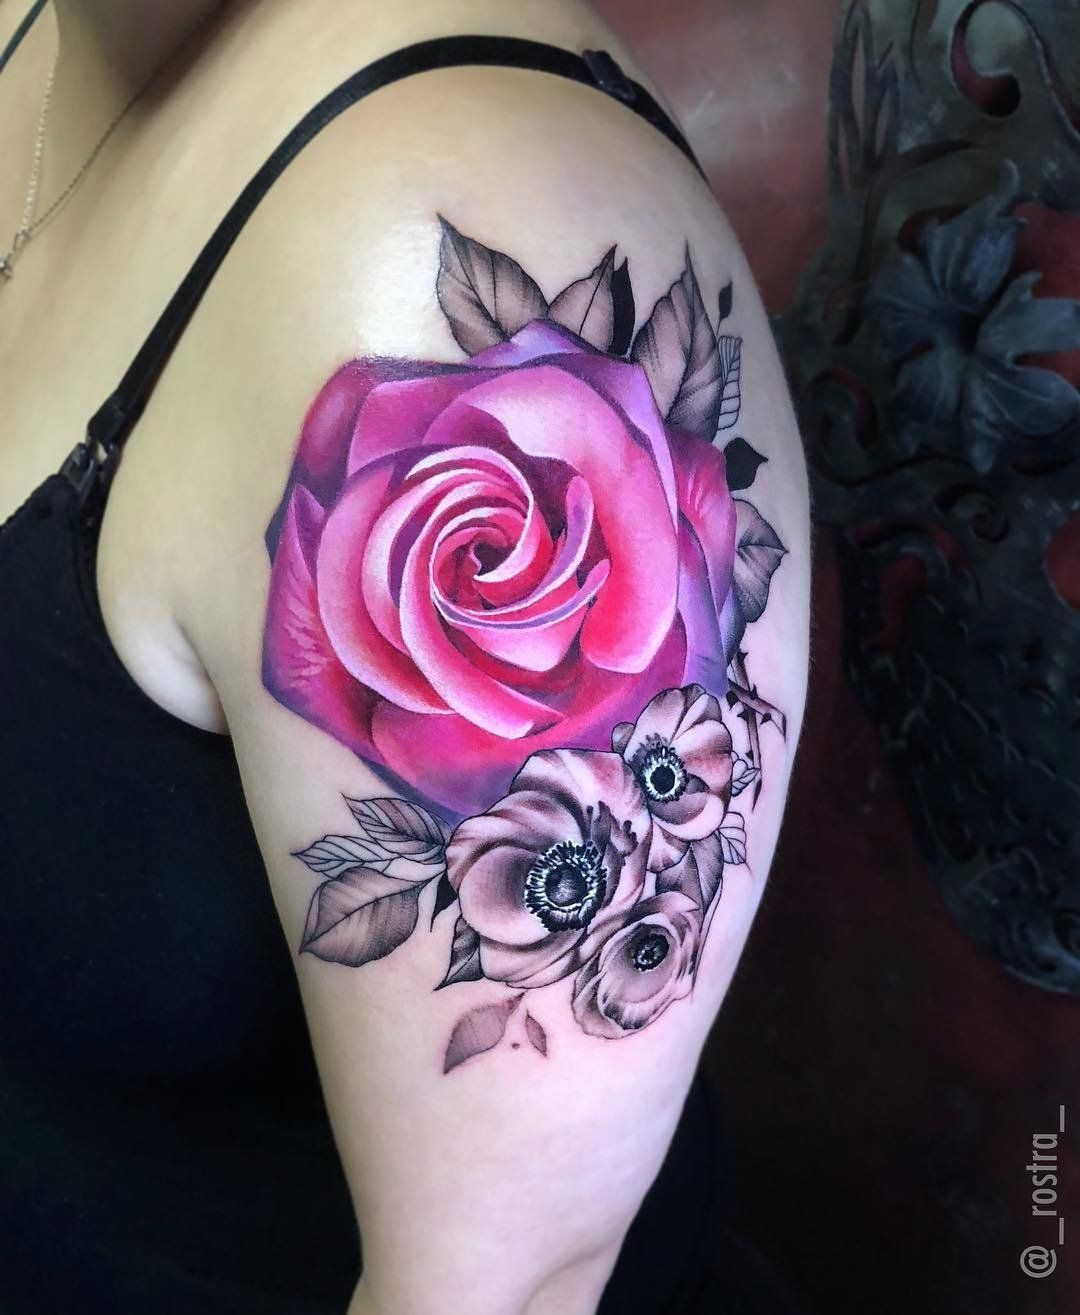 And yes, here's more pink and purple roses, because I am OBSESSED.